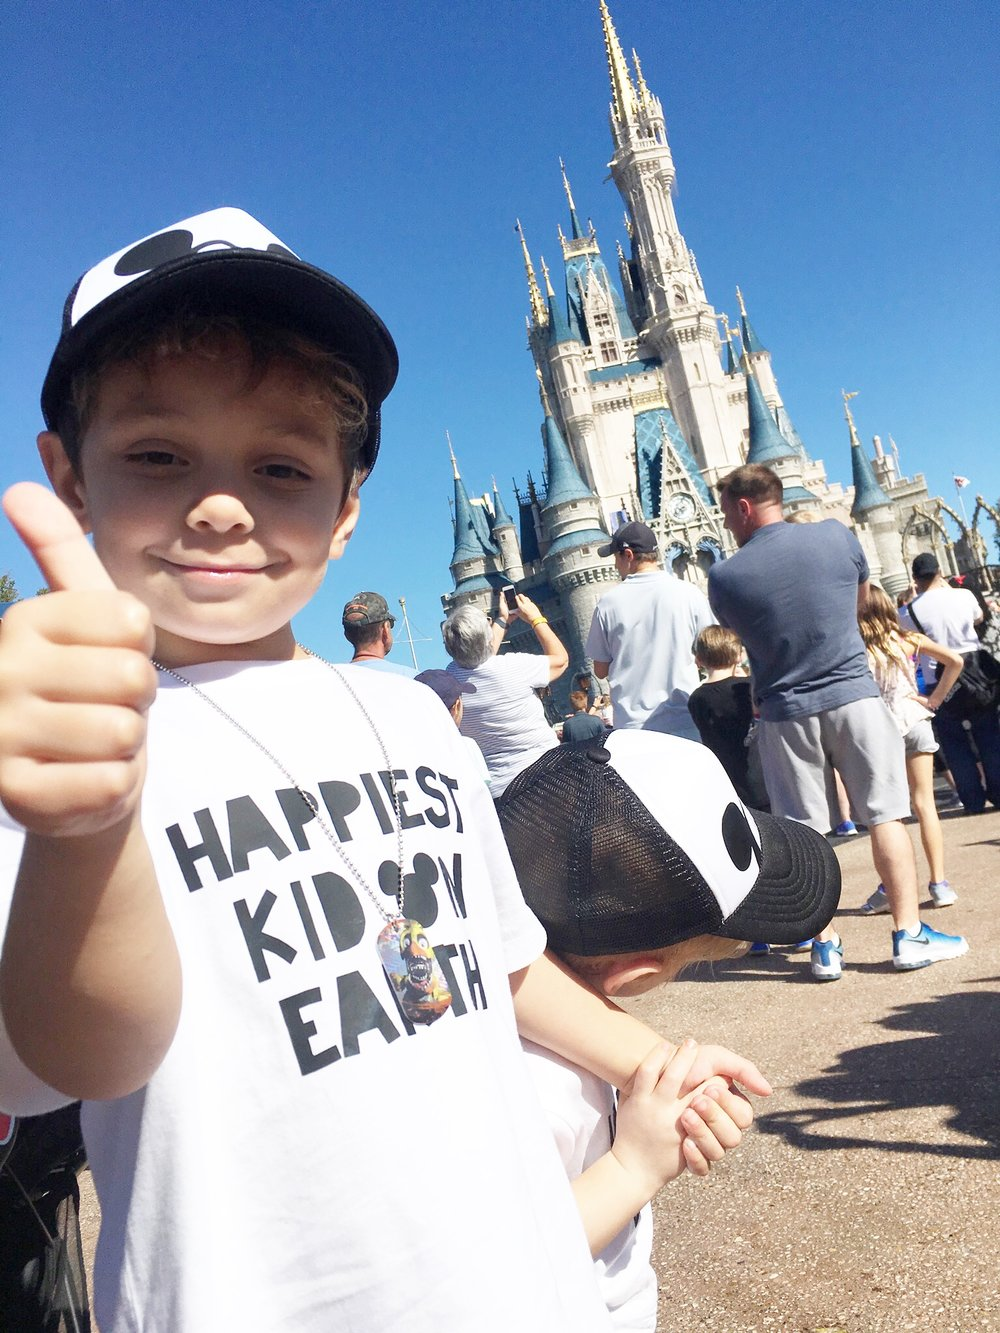 Happiest Kid on Earth during a visit to Walt Disney World in 2017.